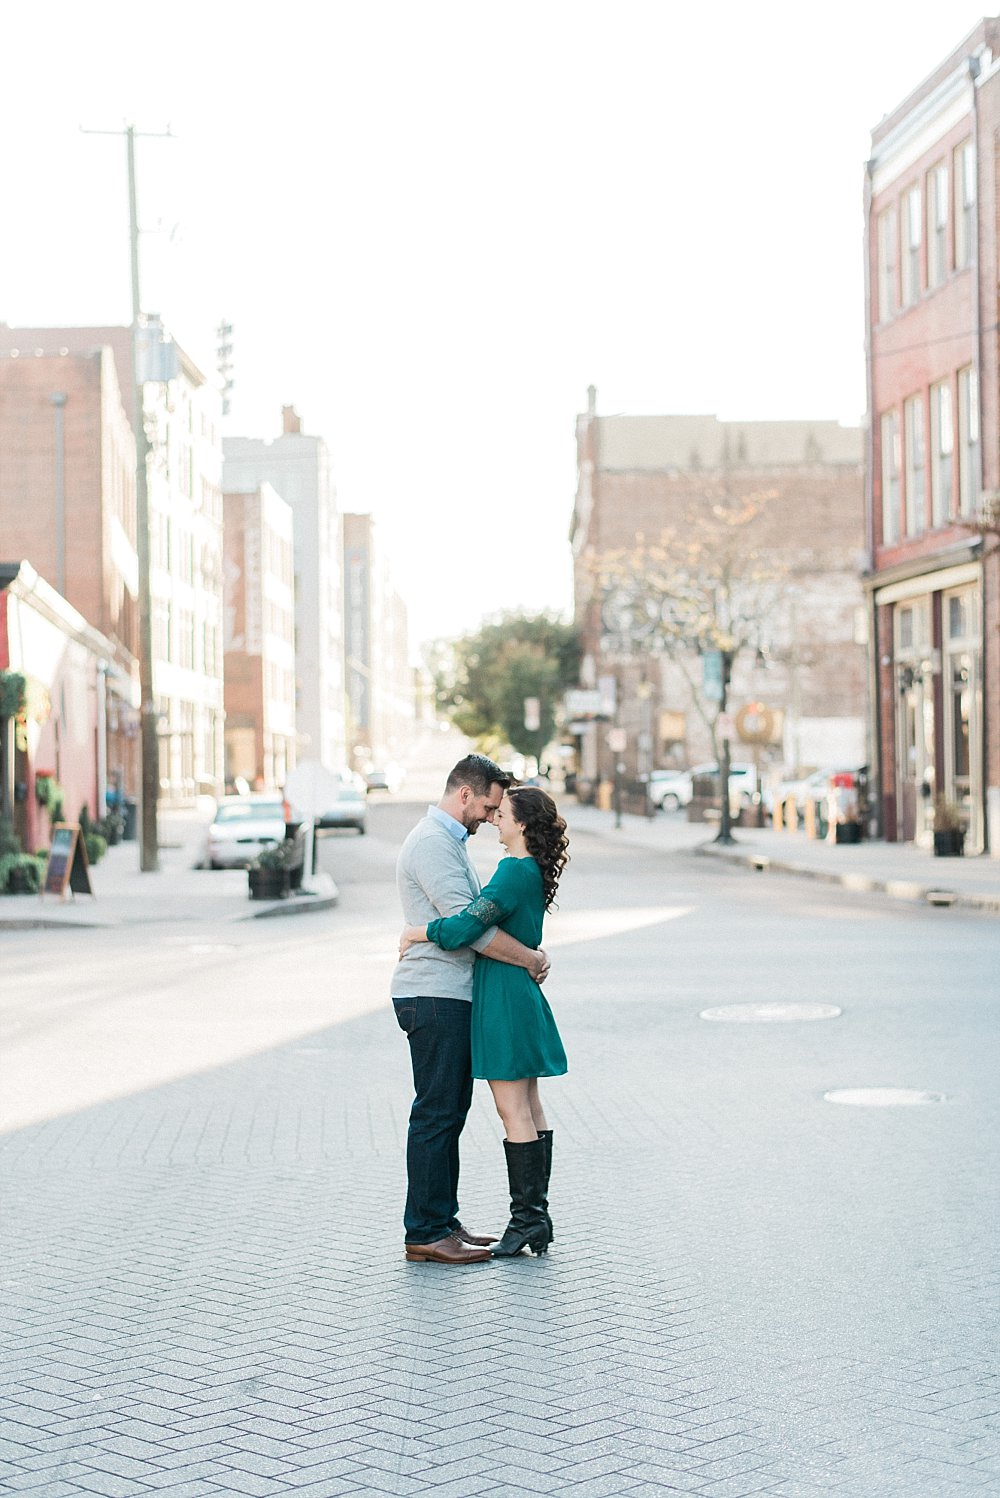 Old City Knoxville Engagement | Best places in Knoxville for Engagement Pictures | Juicebeats Photography